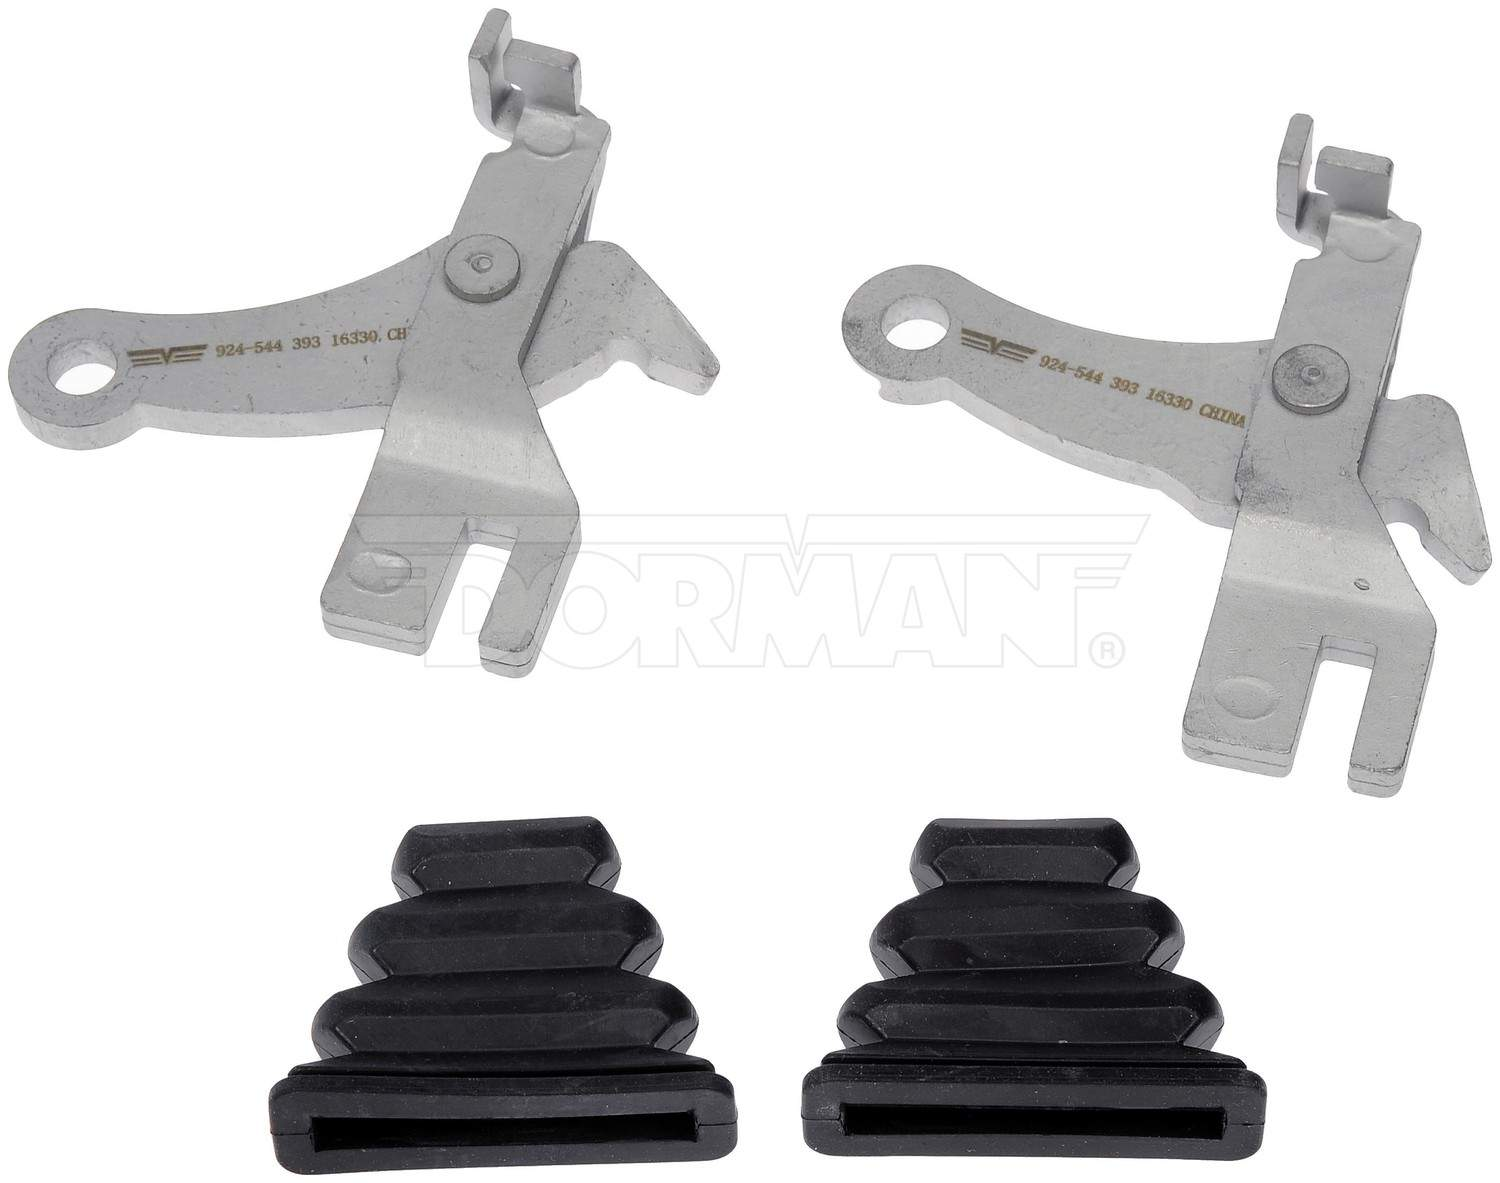 DORMAN OE SOLUTIONS - Parking Brake Lever Kit - DRE 924-544